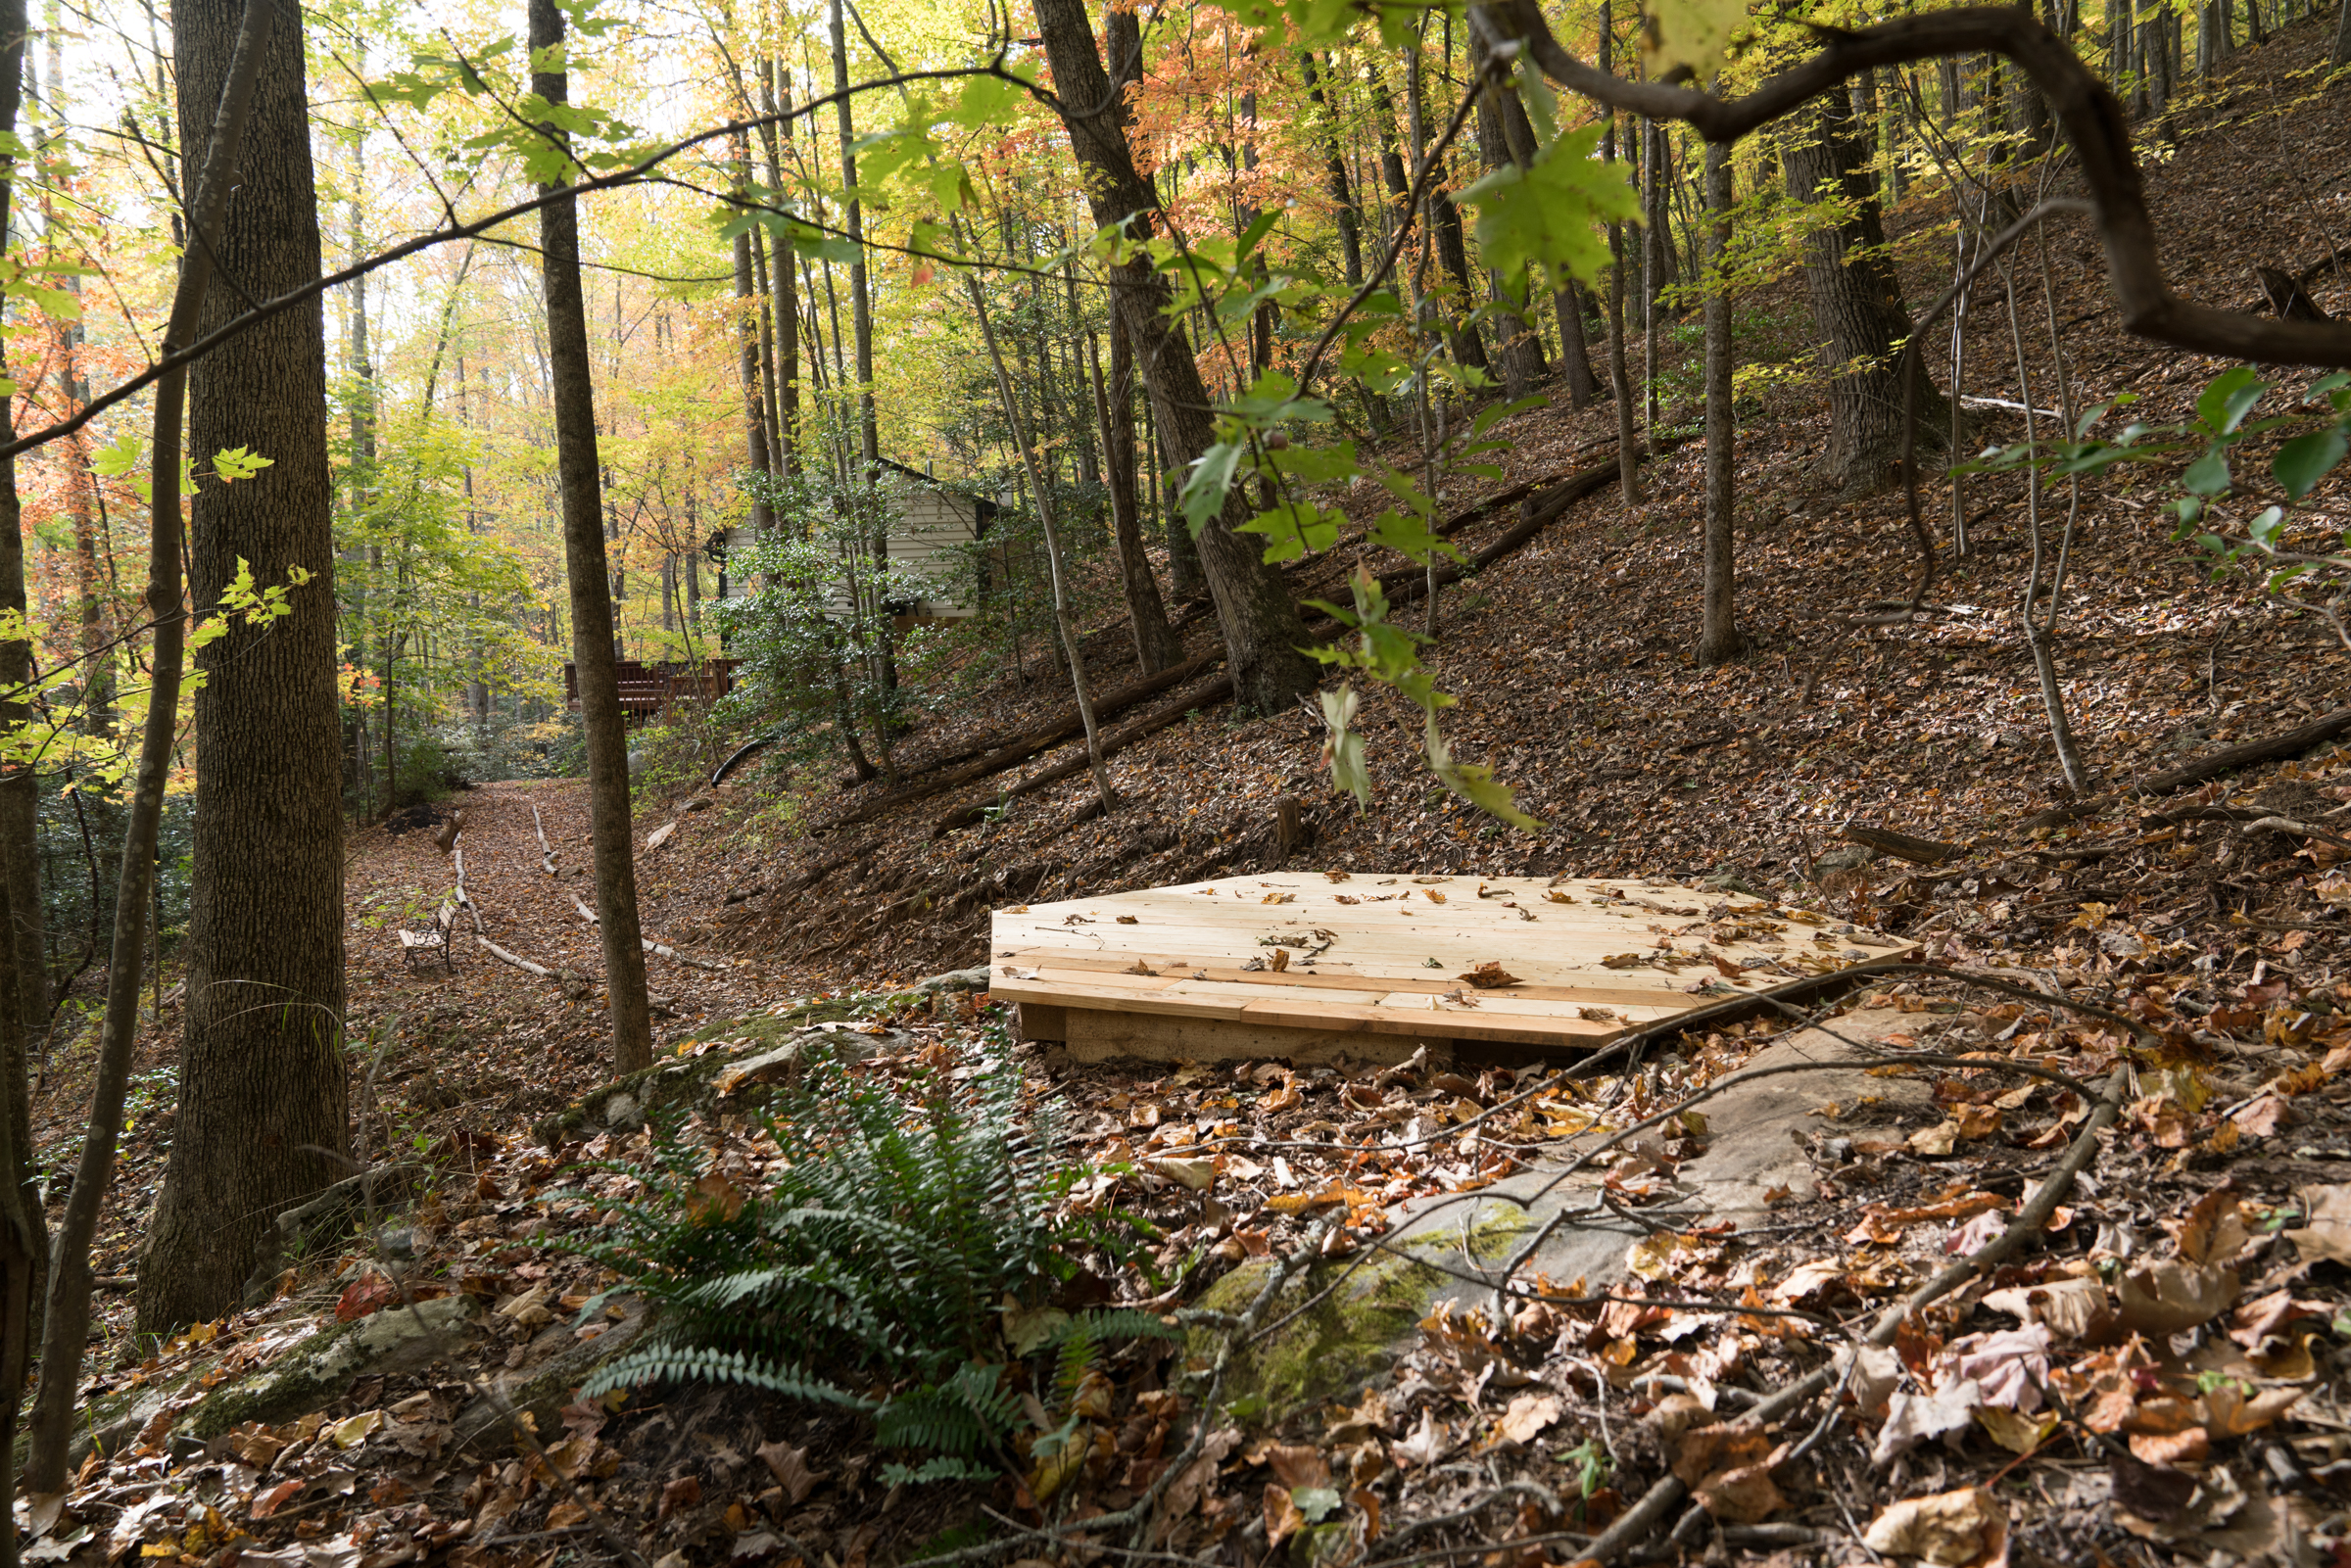 The meditation and yoga platform in the middle of the woods, completely private and dreamy